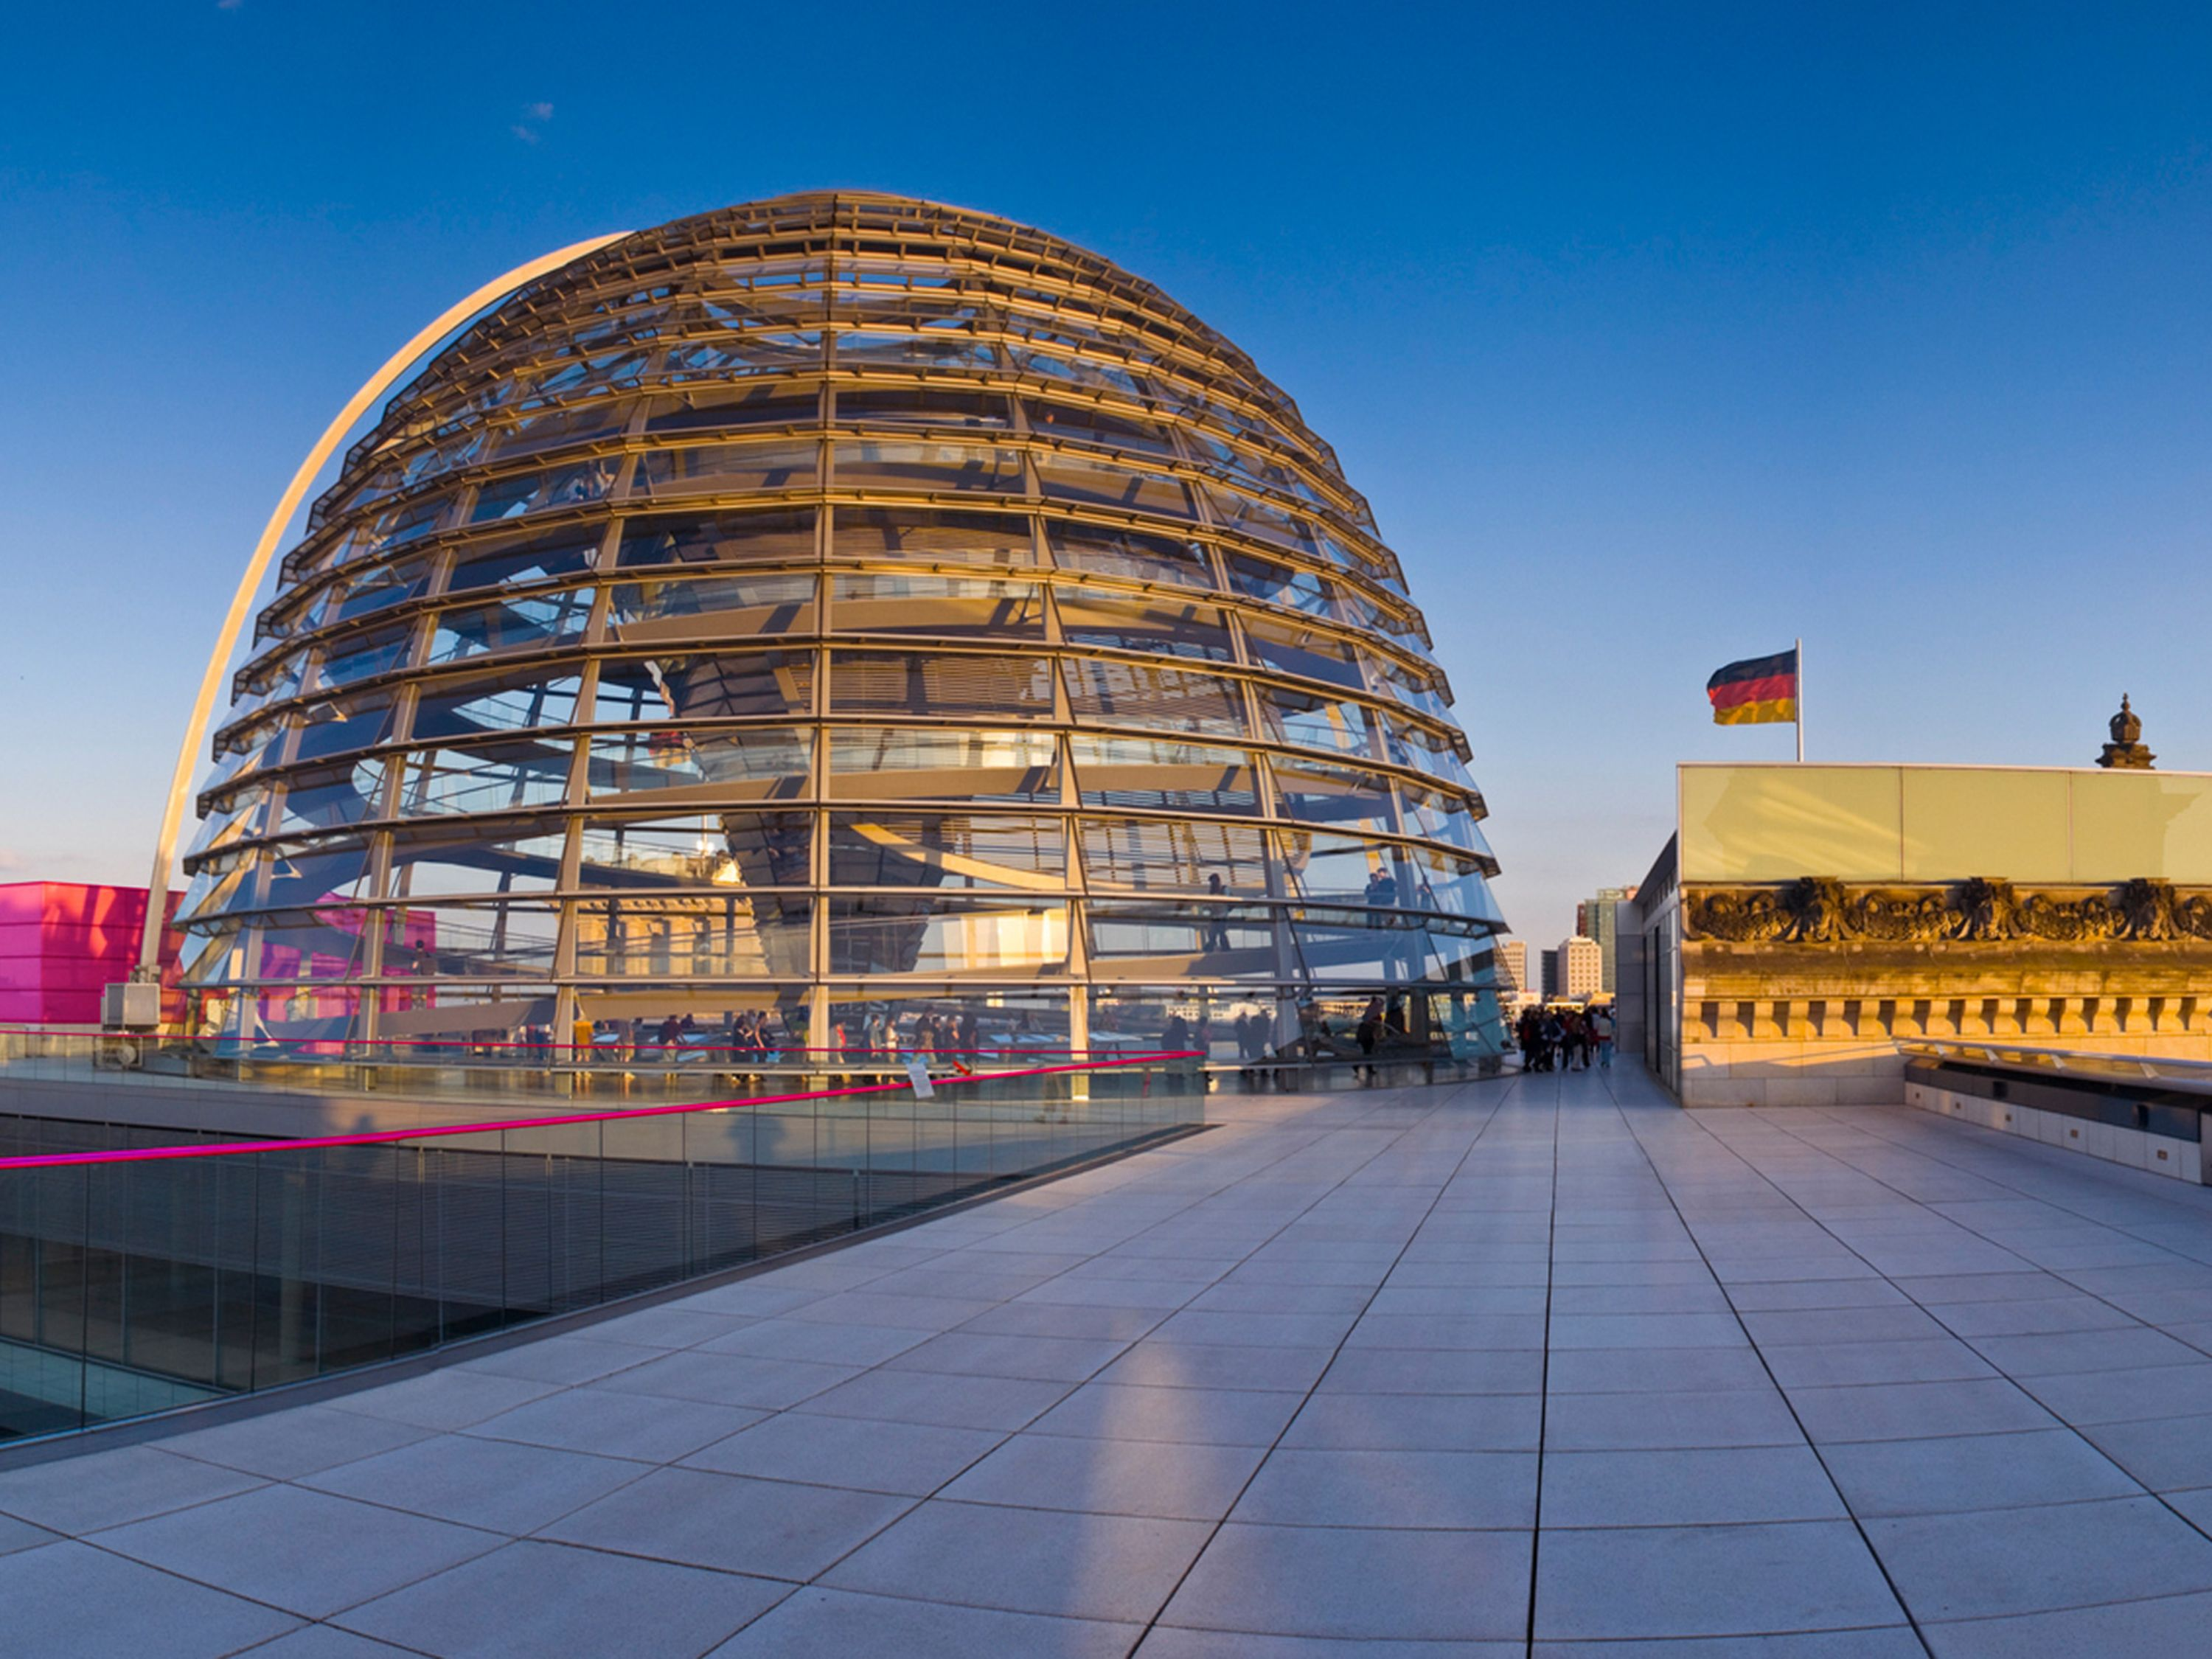 Roof terrace and dome of the Reichstag building in Berlin.